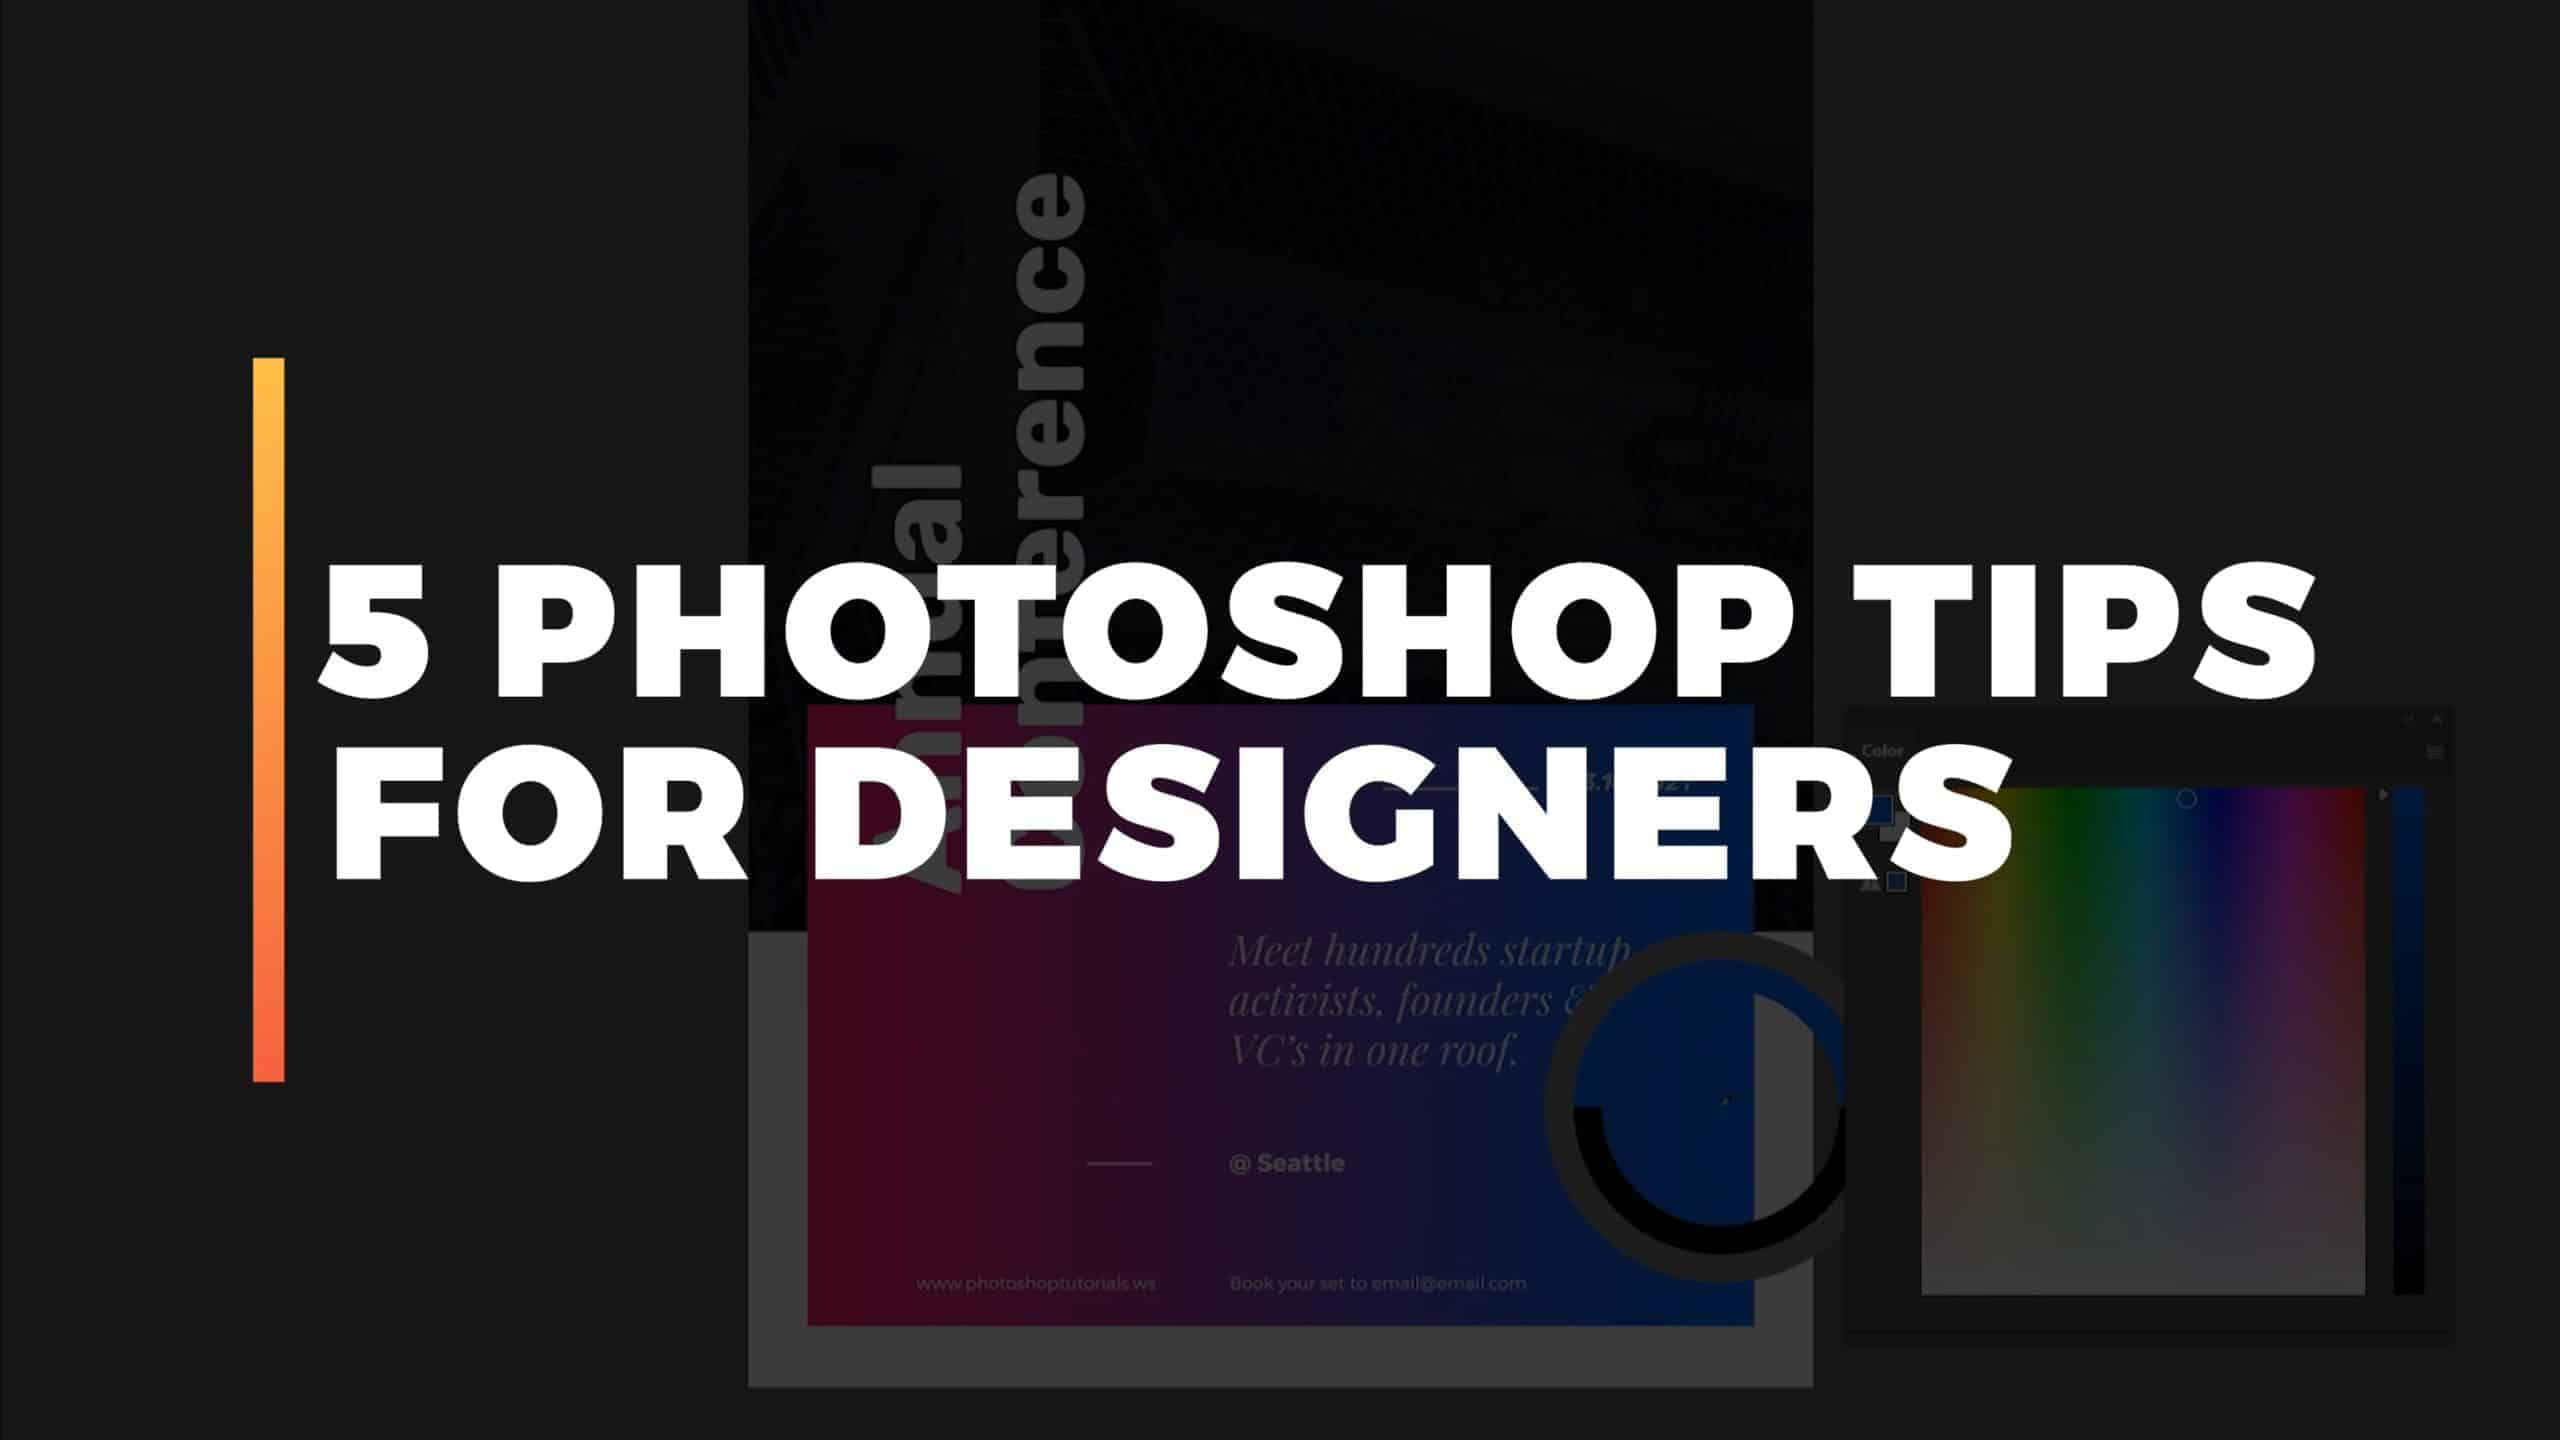 5 Photoshop Tips for Designers